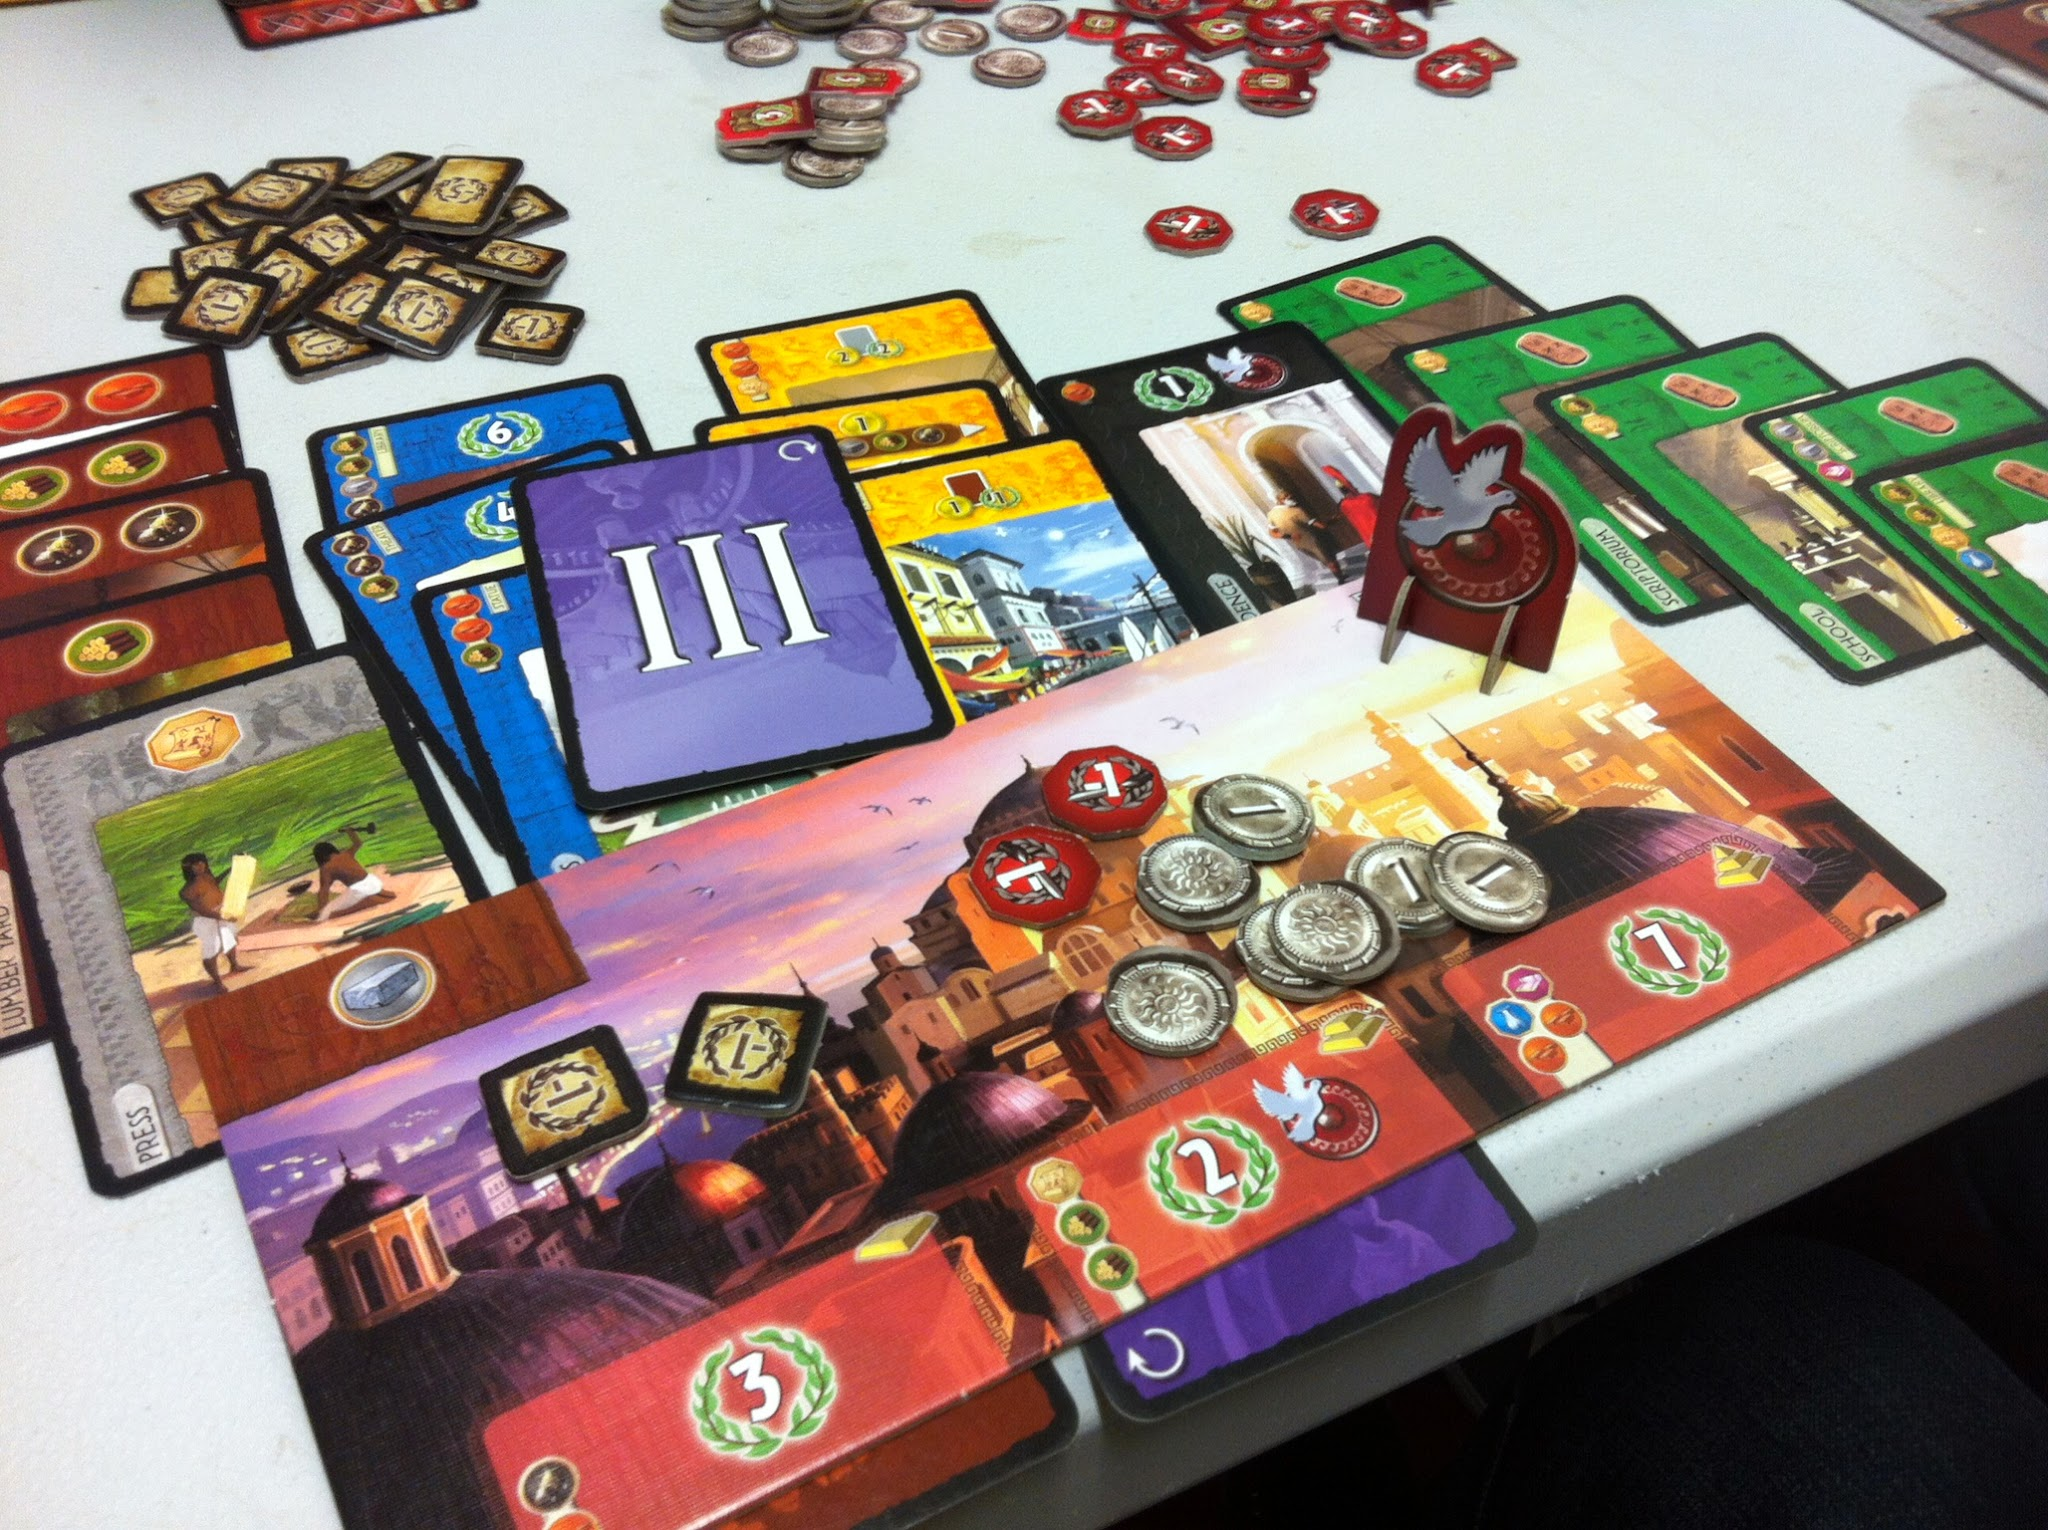 7 Wonders, Crying Grumpies